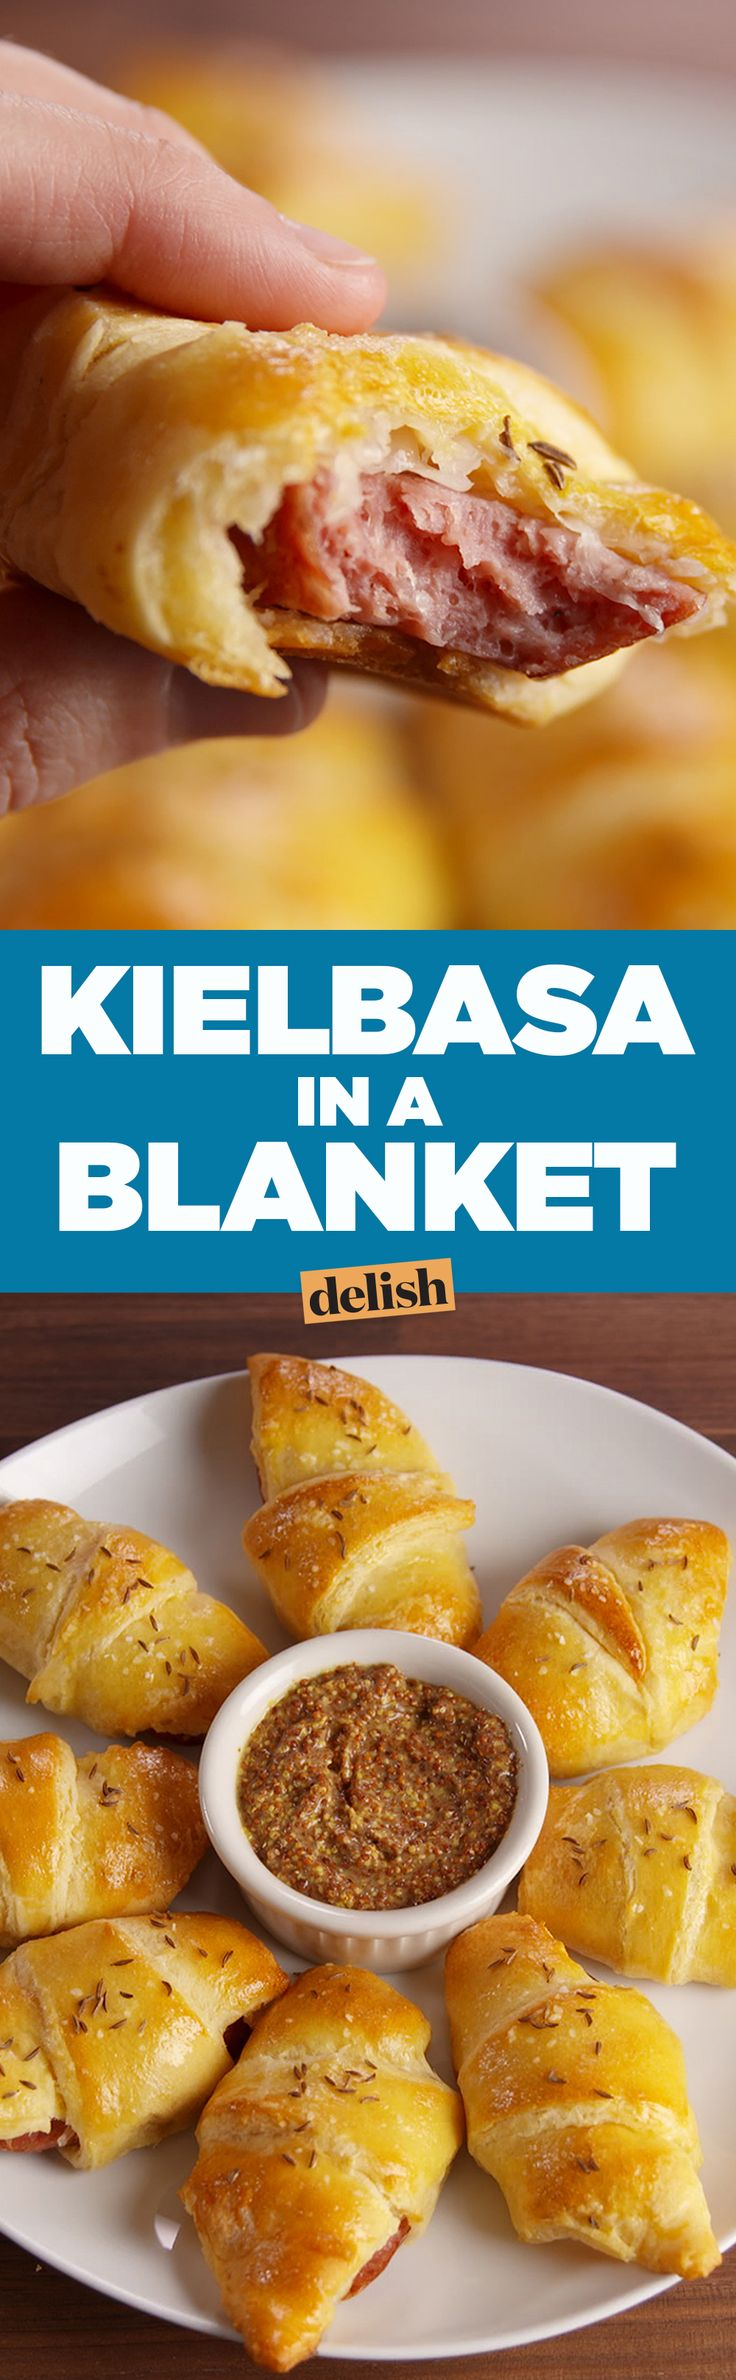 Kielbasa in a Blanket will send pigs in a blanket into retirement. Get the recipe on Delish.com.